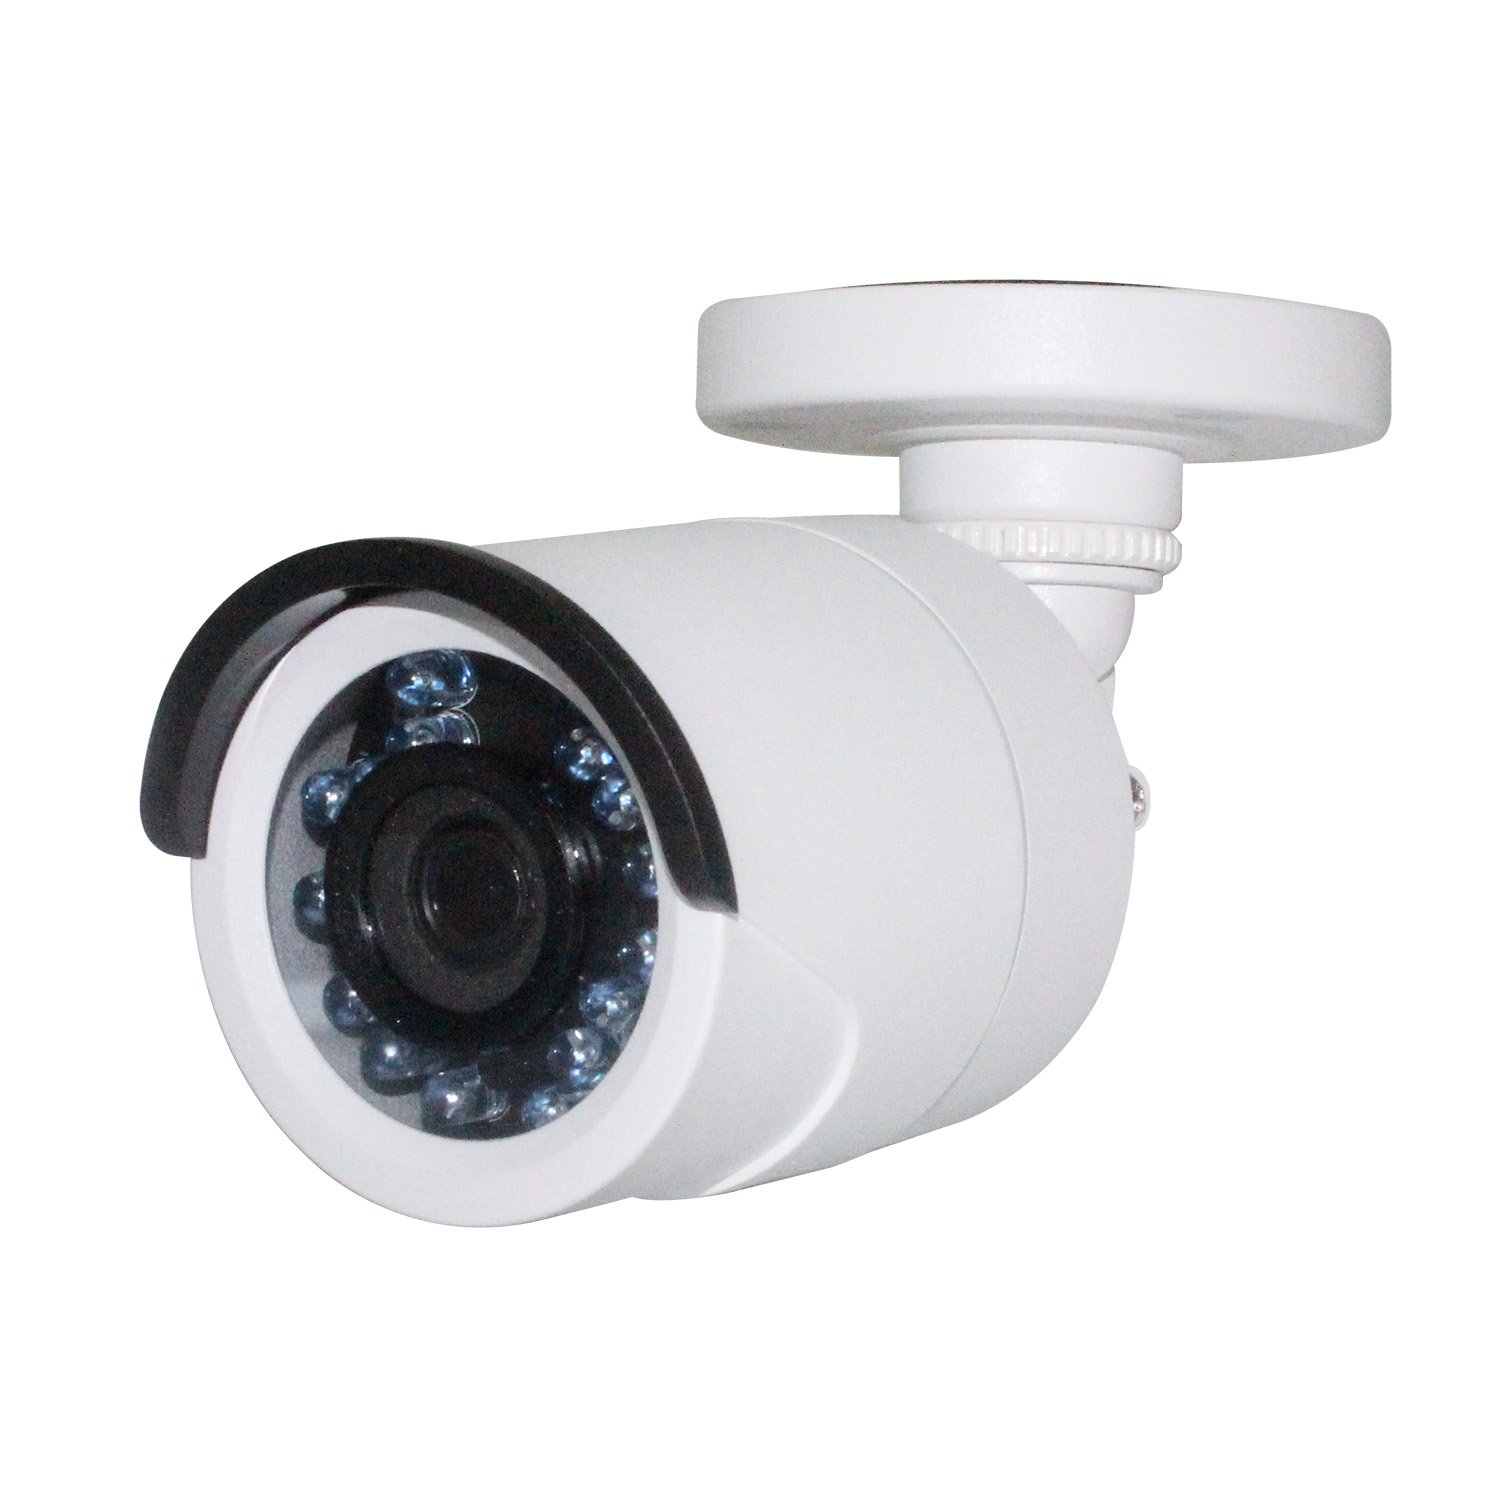 Hikvision Security Bullet Camera, 2MP Analog Surveillance Camera 4-in-1(TVI/AHD/CVI/960 Analog) Outdoor,Work with Hikvision DVR,3.6mm IP66(DS-2CE16D0T-IRF OEM)